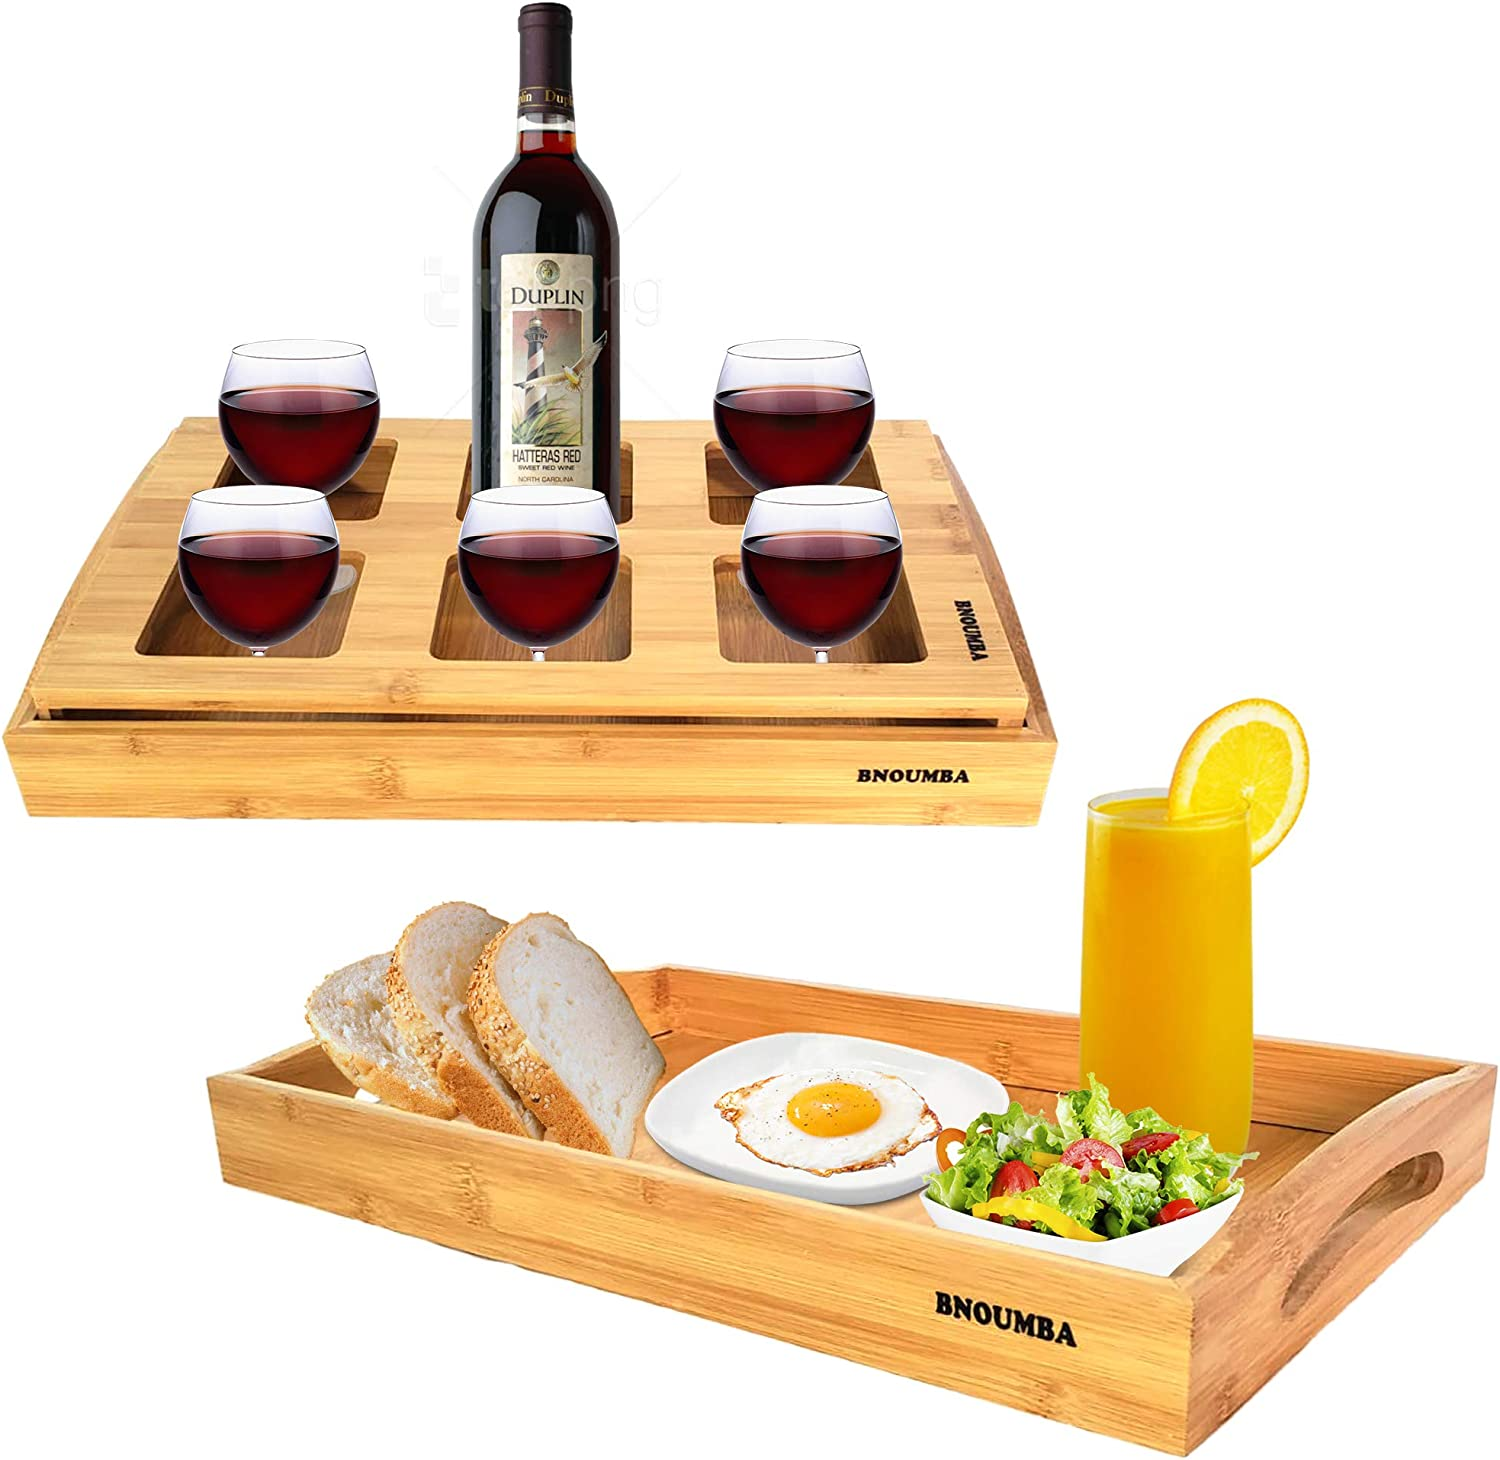 BNOUMBA Wood Serving Tray with Handles and Holder for 6 Glasses. 2 in 1 Set of Bamboo Tray for Foods and Drinks. Serving Eating, Dinner, Breakfast on Bed, Tea coffee, Wine, Whiskey